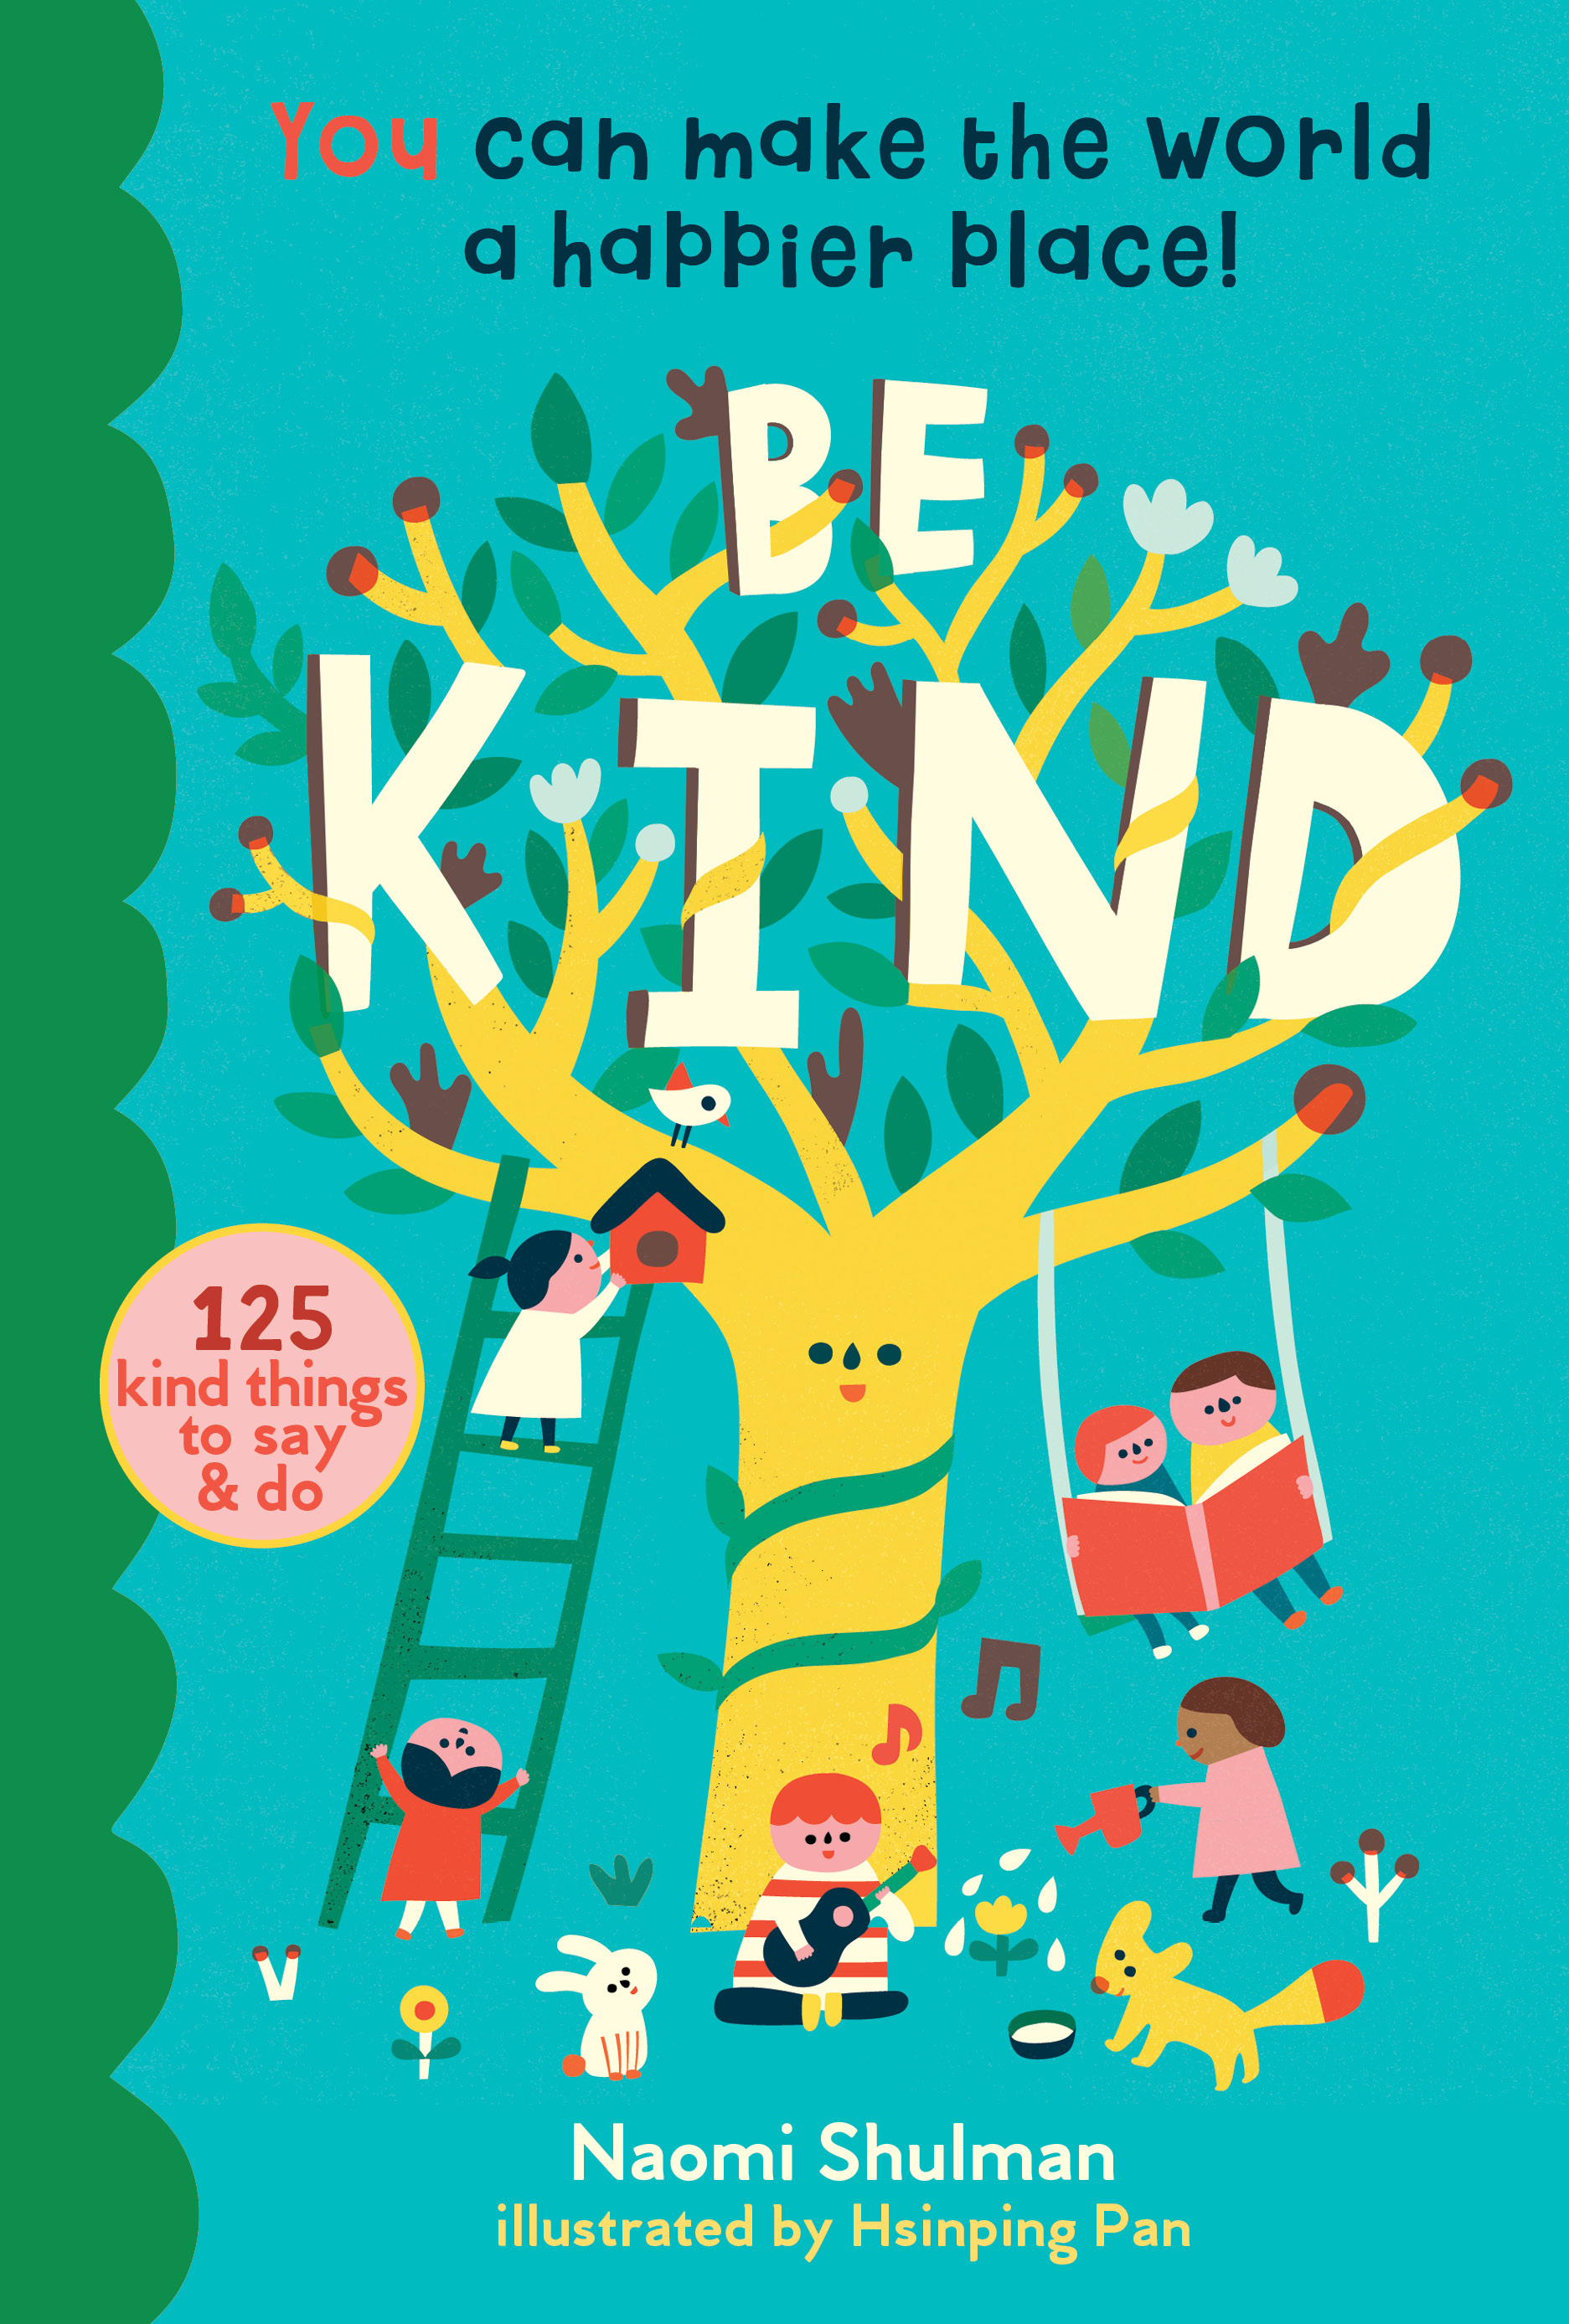 Be Kind You Can Make the World a Happier Place! 125 Kind Things to Say & Do - Naomi Shulman